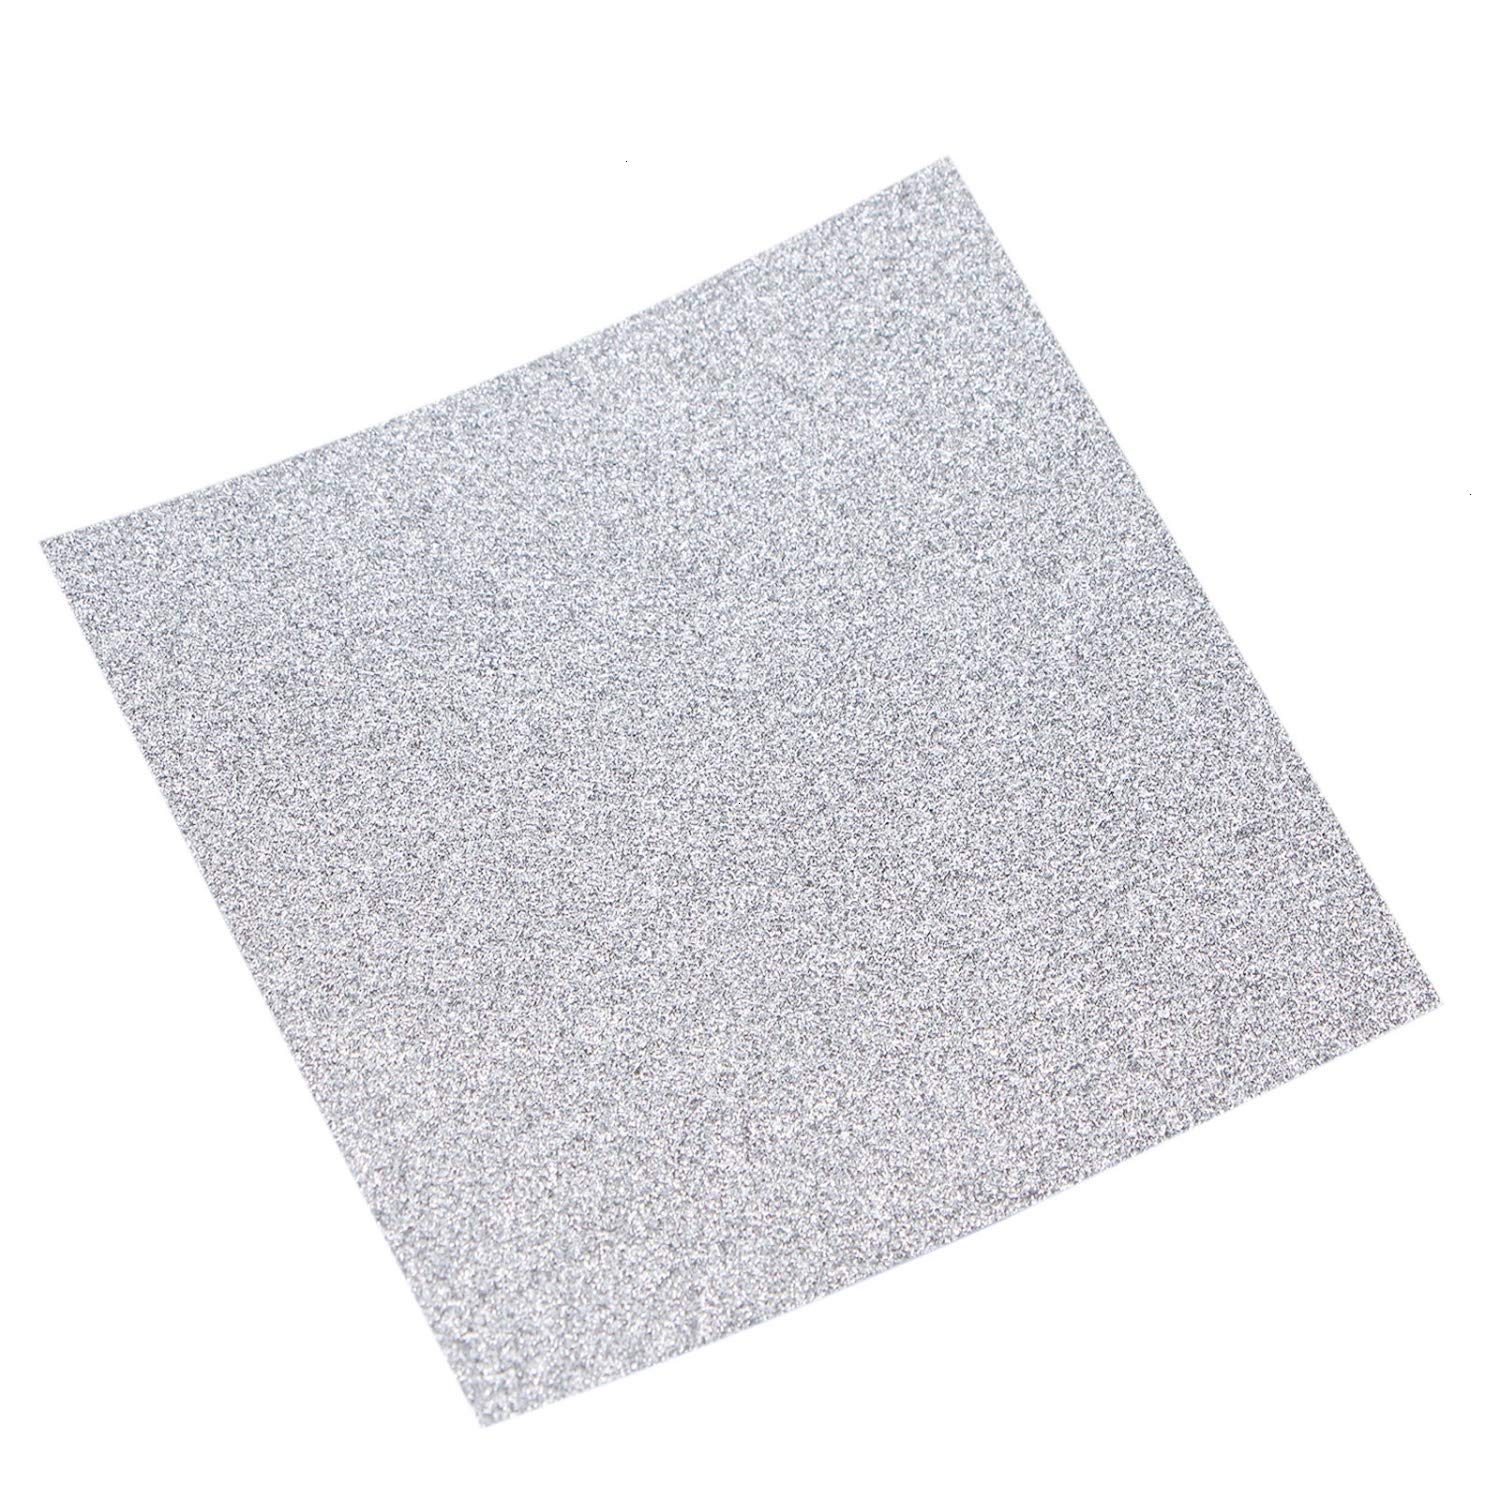 JETEHO 100 PCS Glitter Silver Origami Paper for Crafts Wedding Party Home Decoration 7cm